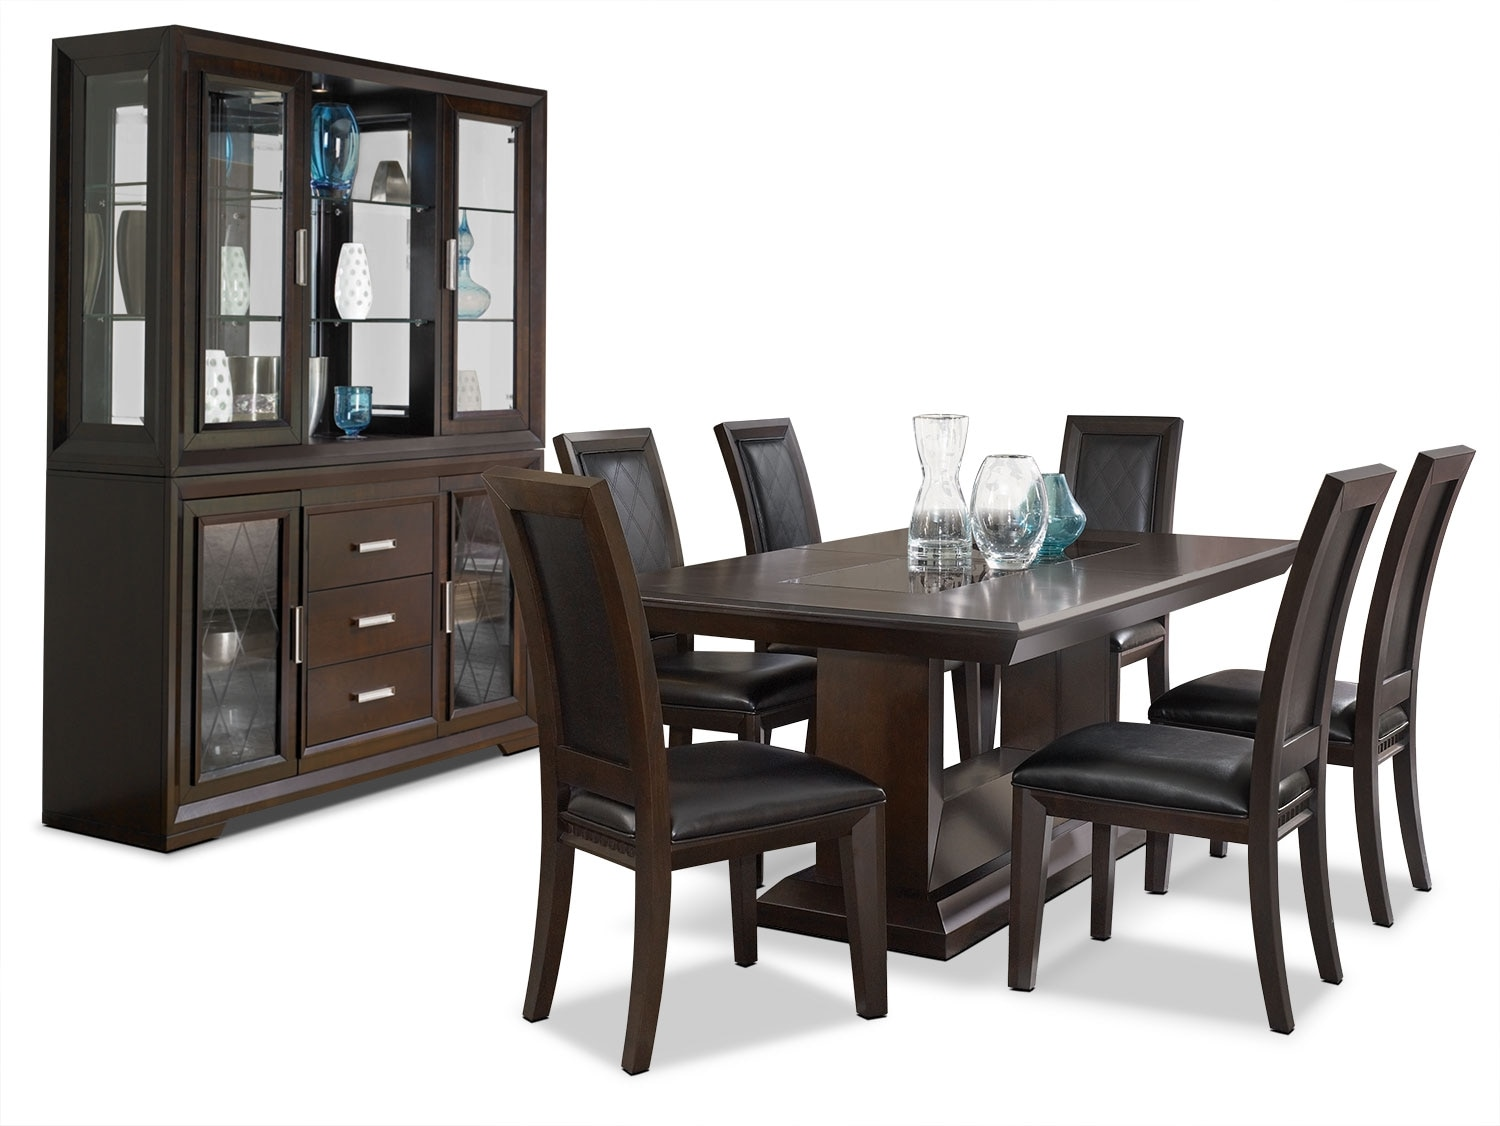 The Brick Dining Room Sets Brentwood 9 Piece Dining Package The Brick